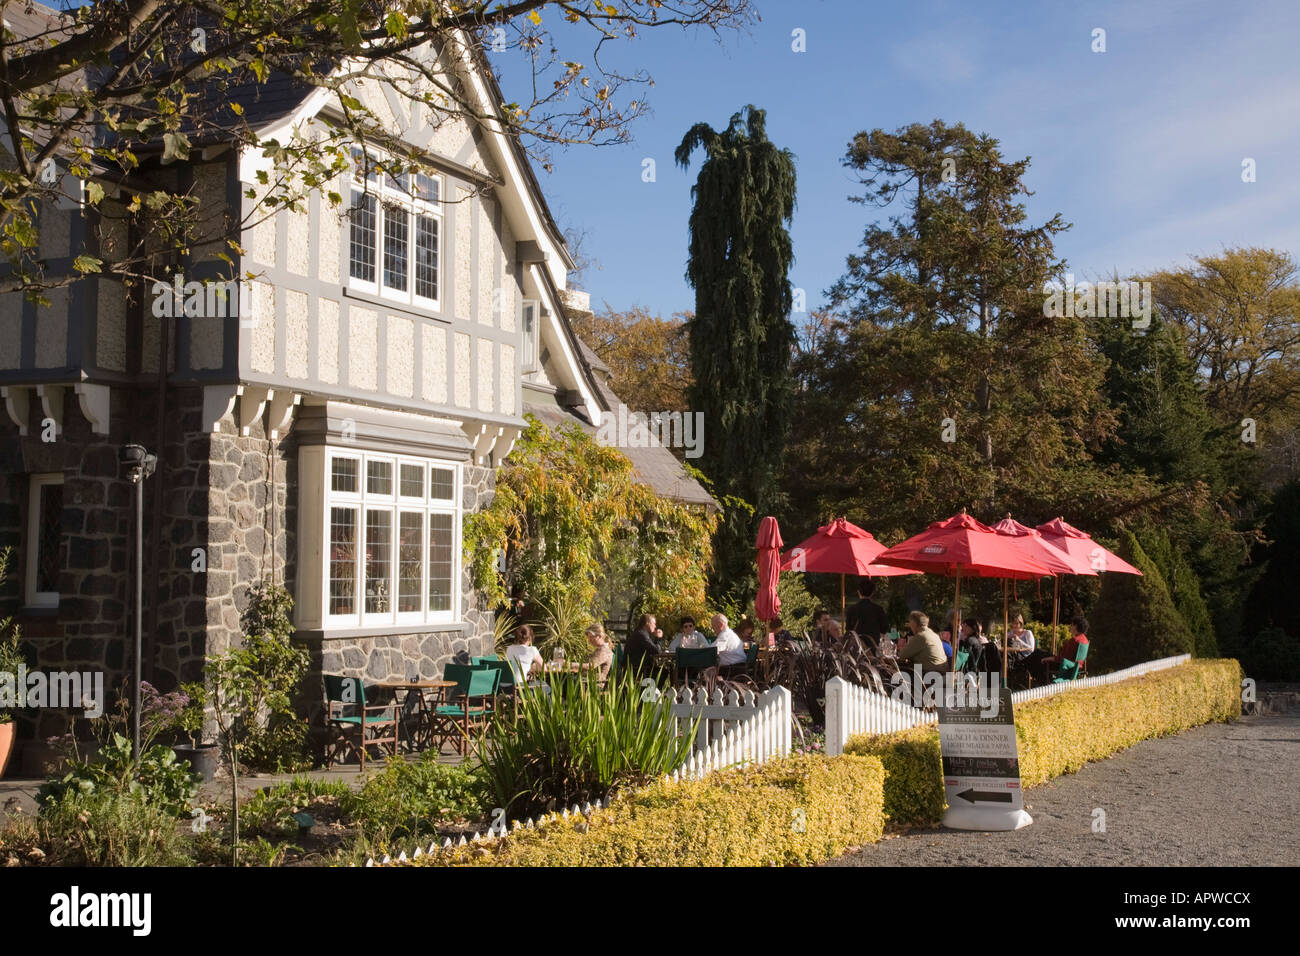 People Sitting Outside Curator S House Restaurant Cafe In Hagley Park Christchurch South Island New Zealand